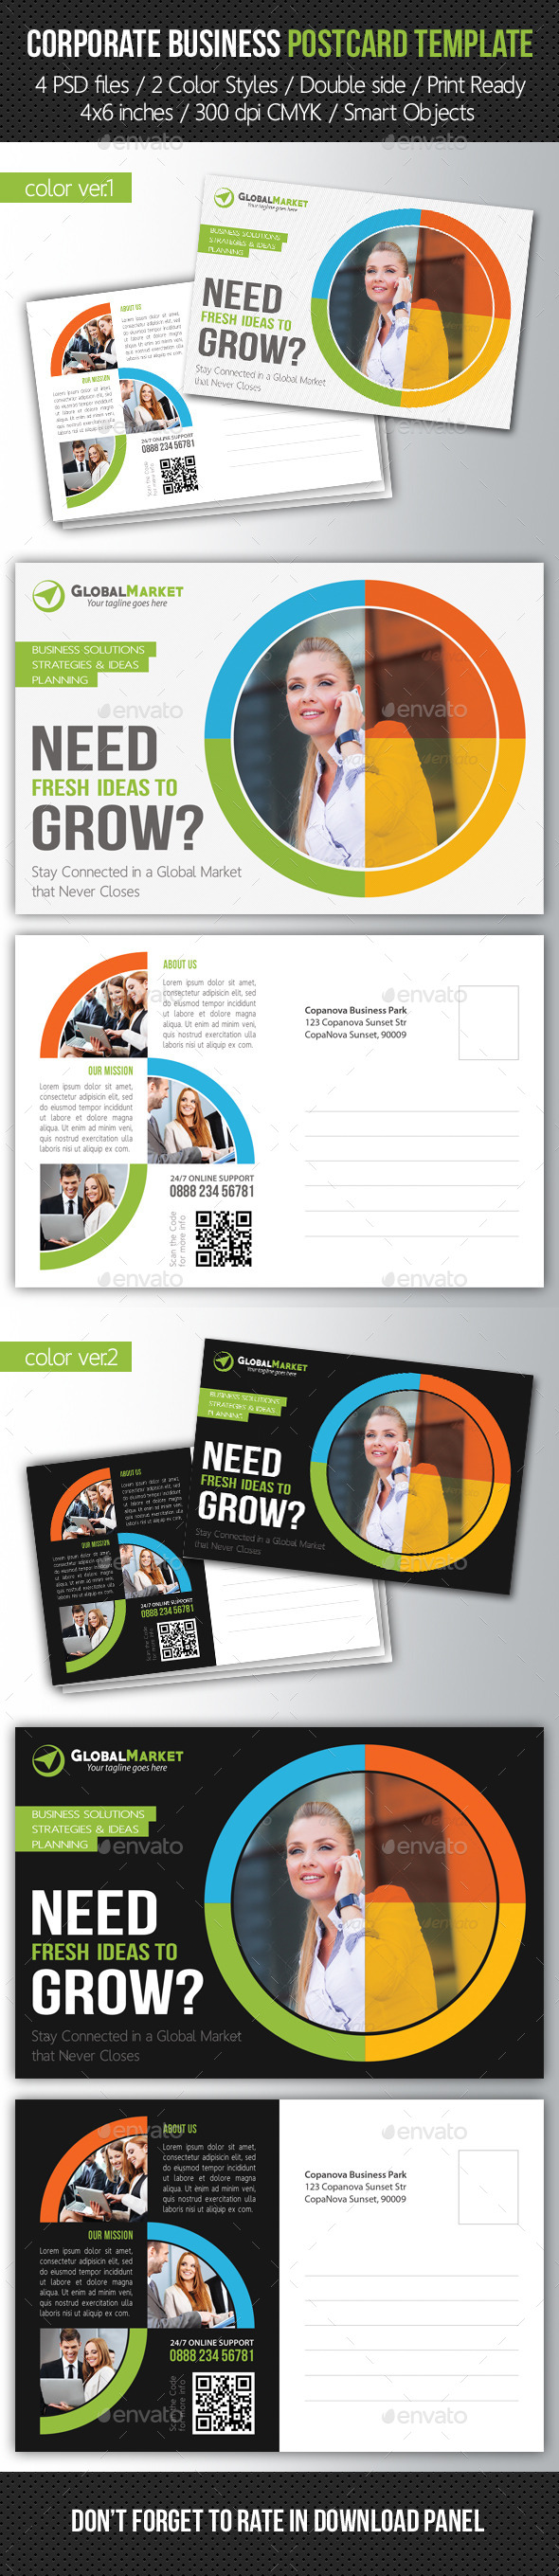 Corporate Business Postcard Template V03 - Cards & Invites Print Templates